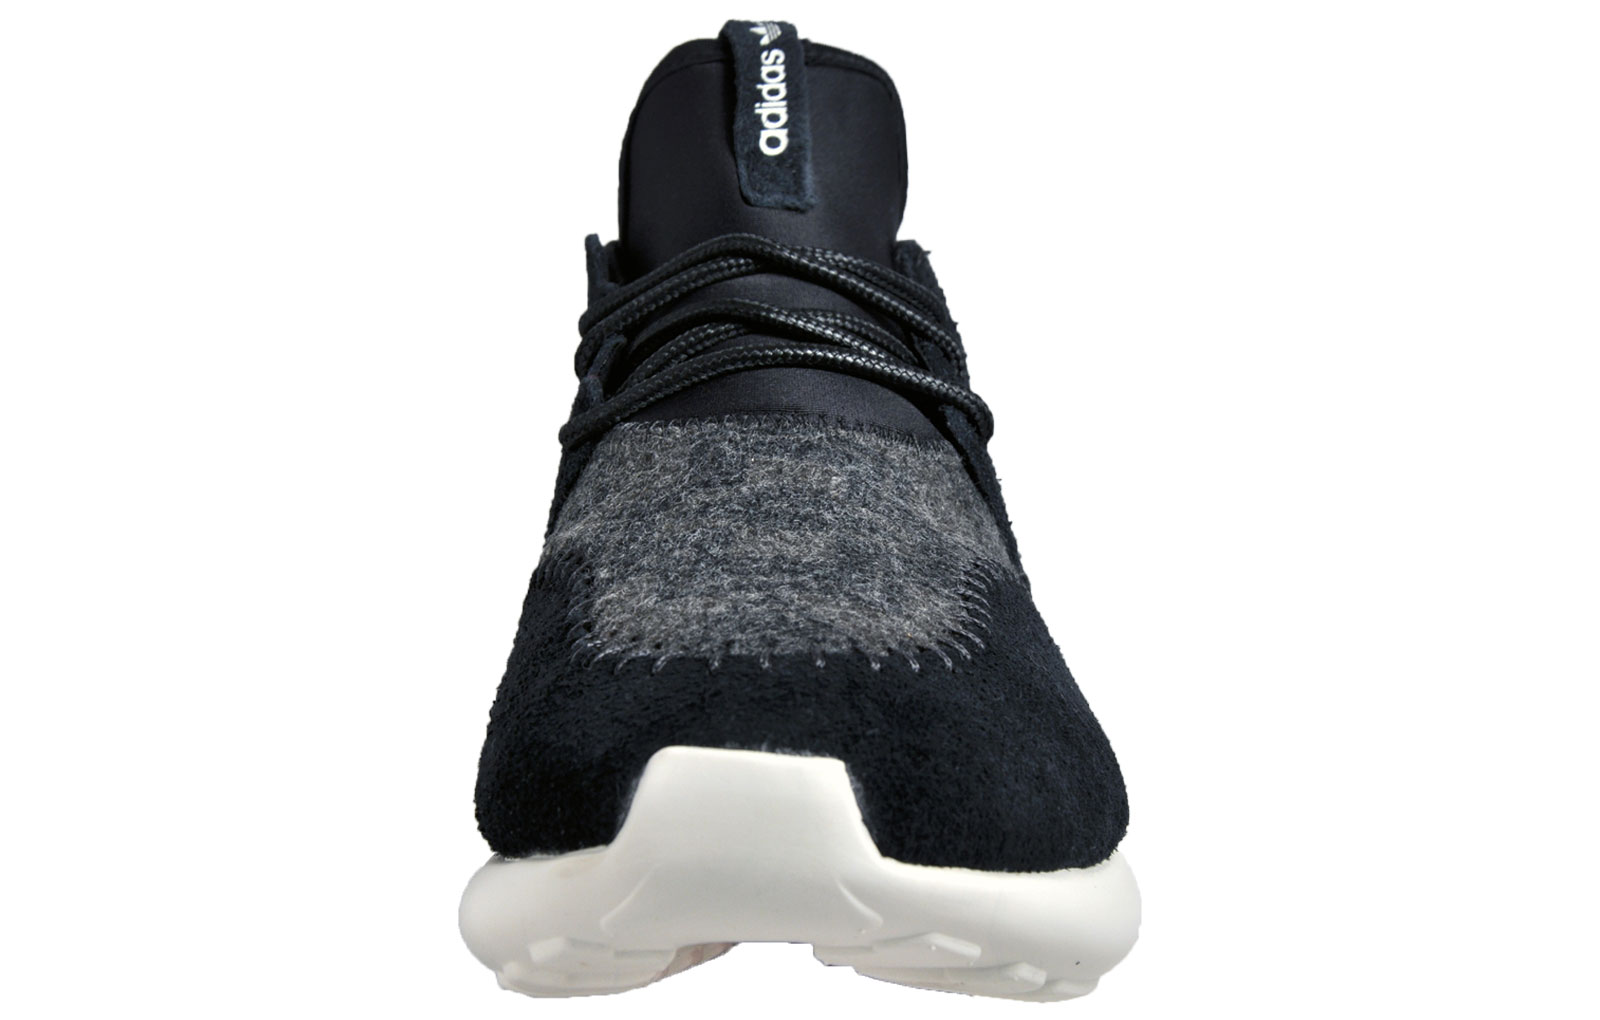 82e7a6cbf Adidas Originals Tubular Moc Runner Mens Suede Gym Running Casual Trainers  Black